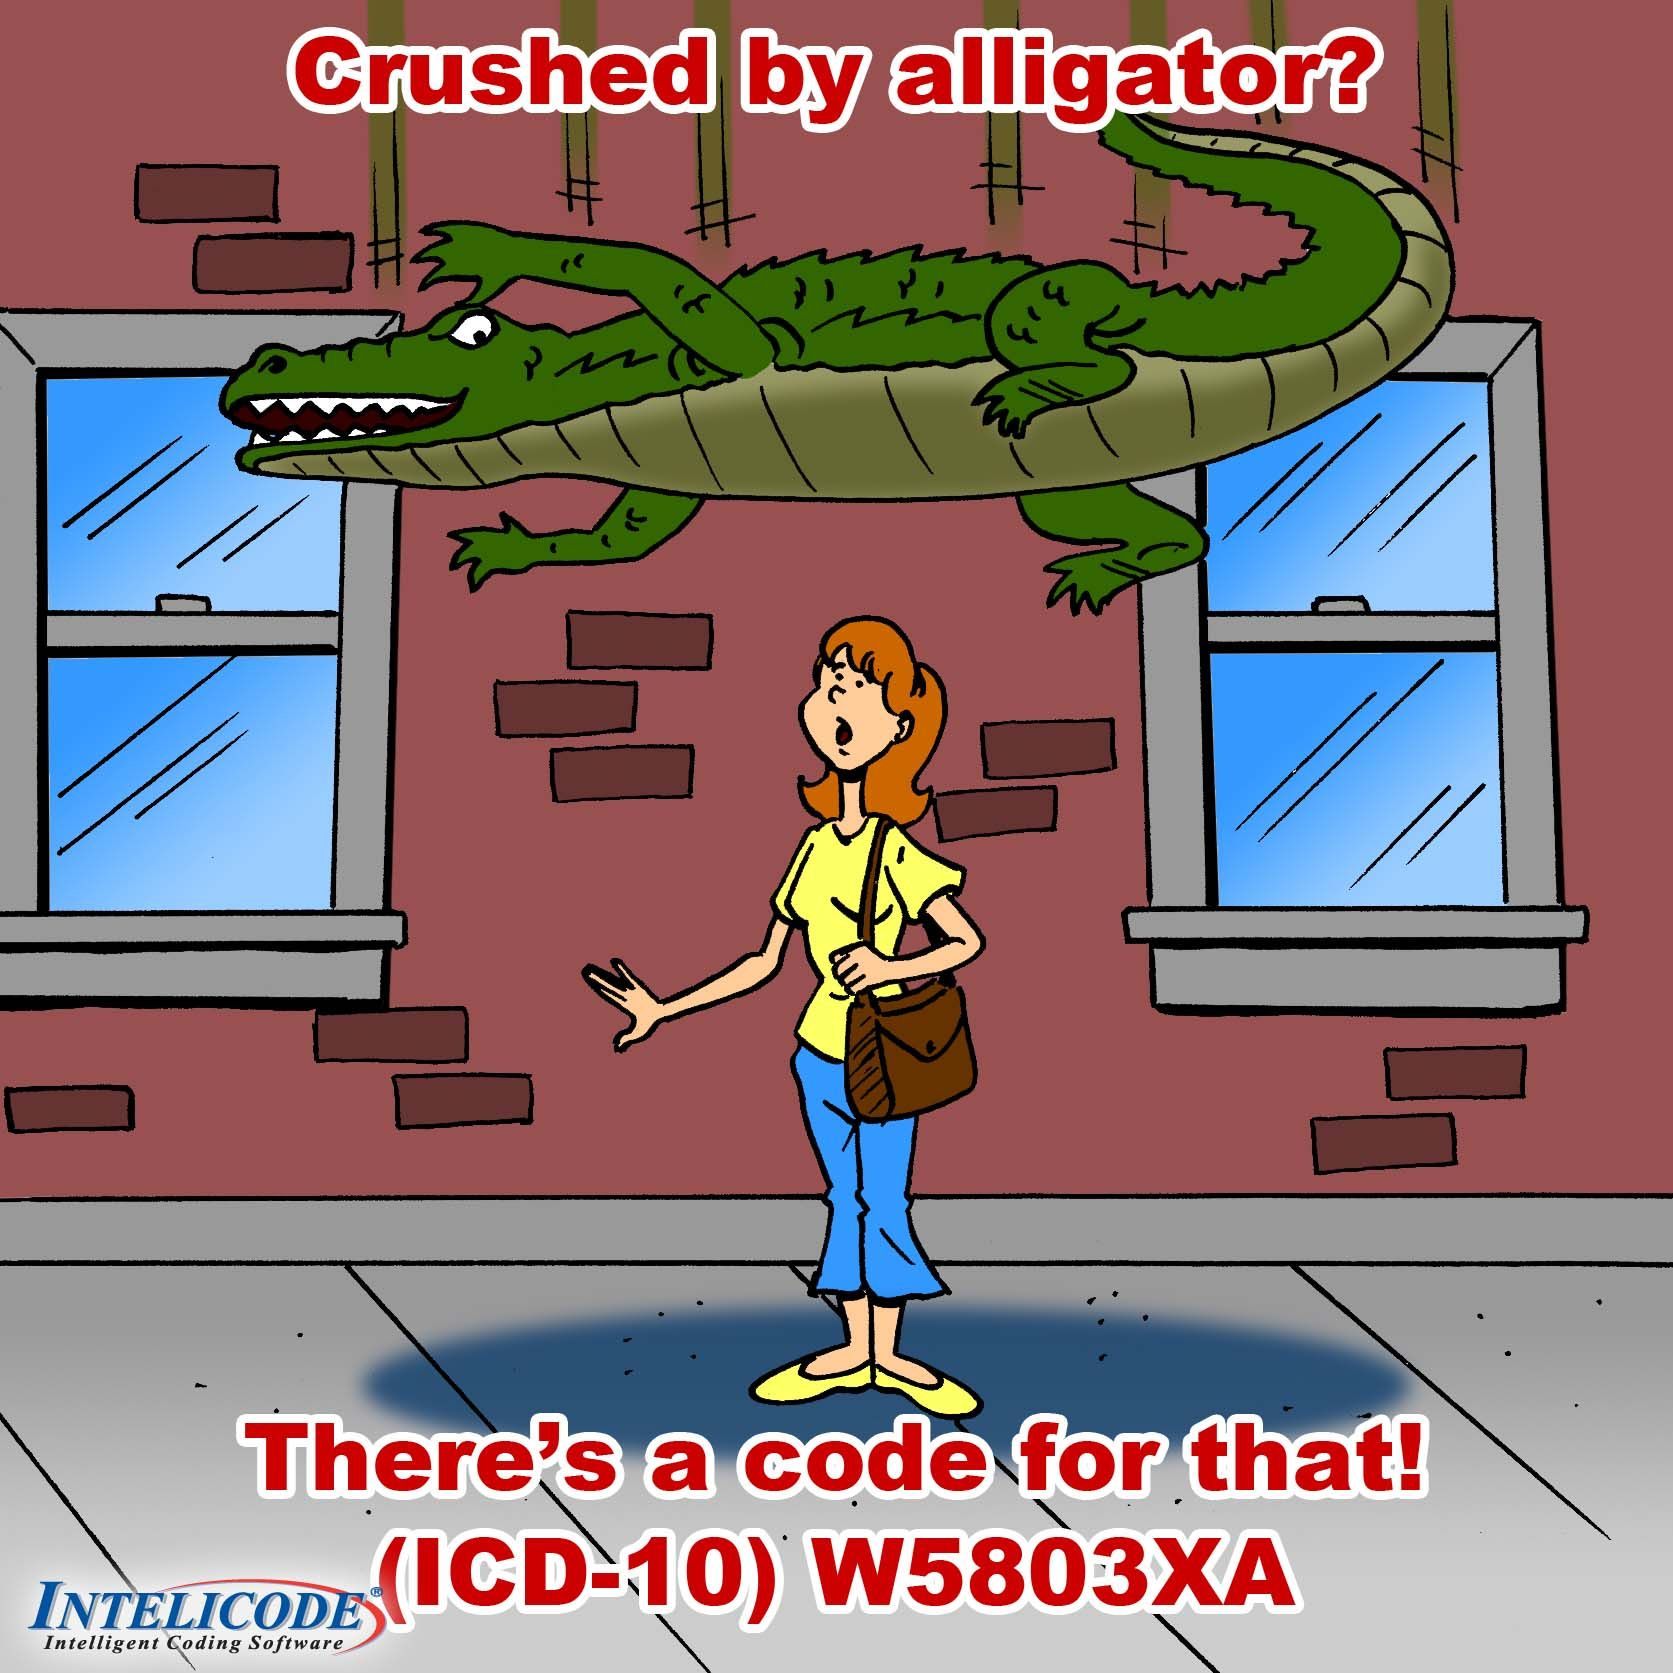 Family planning icd 10 code sheet - Crushed By Alligator Coding Intelicode